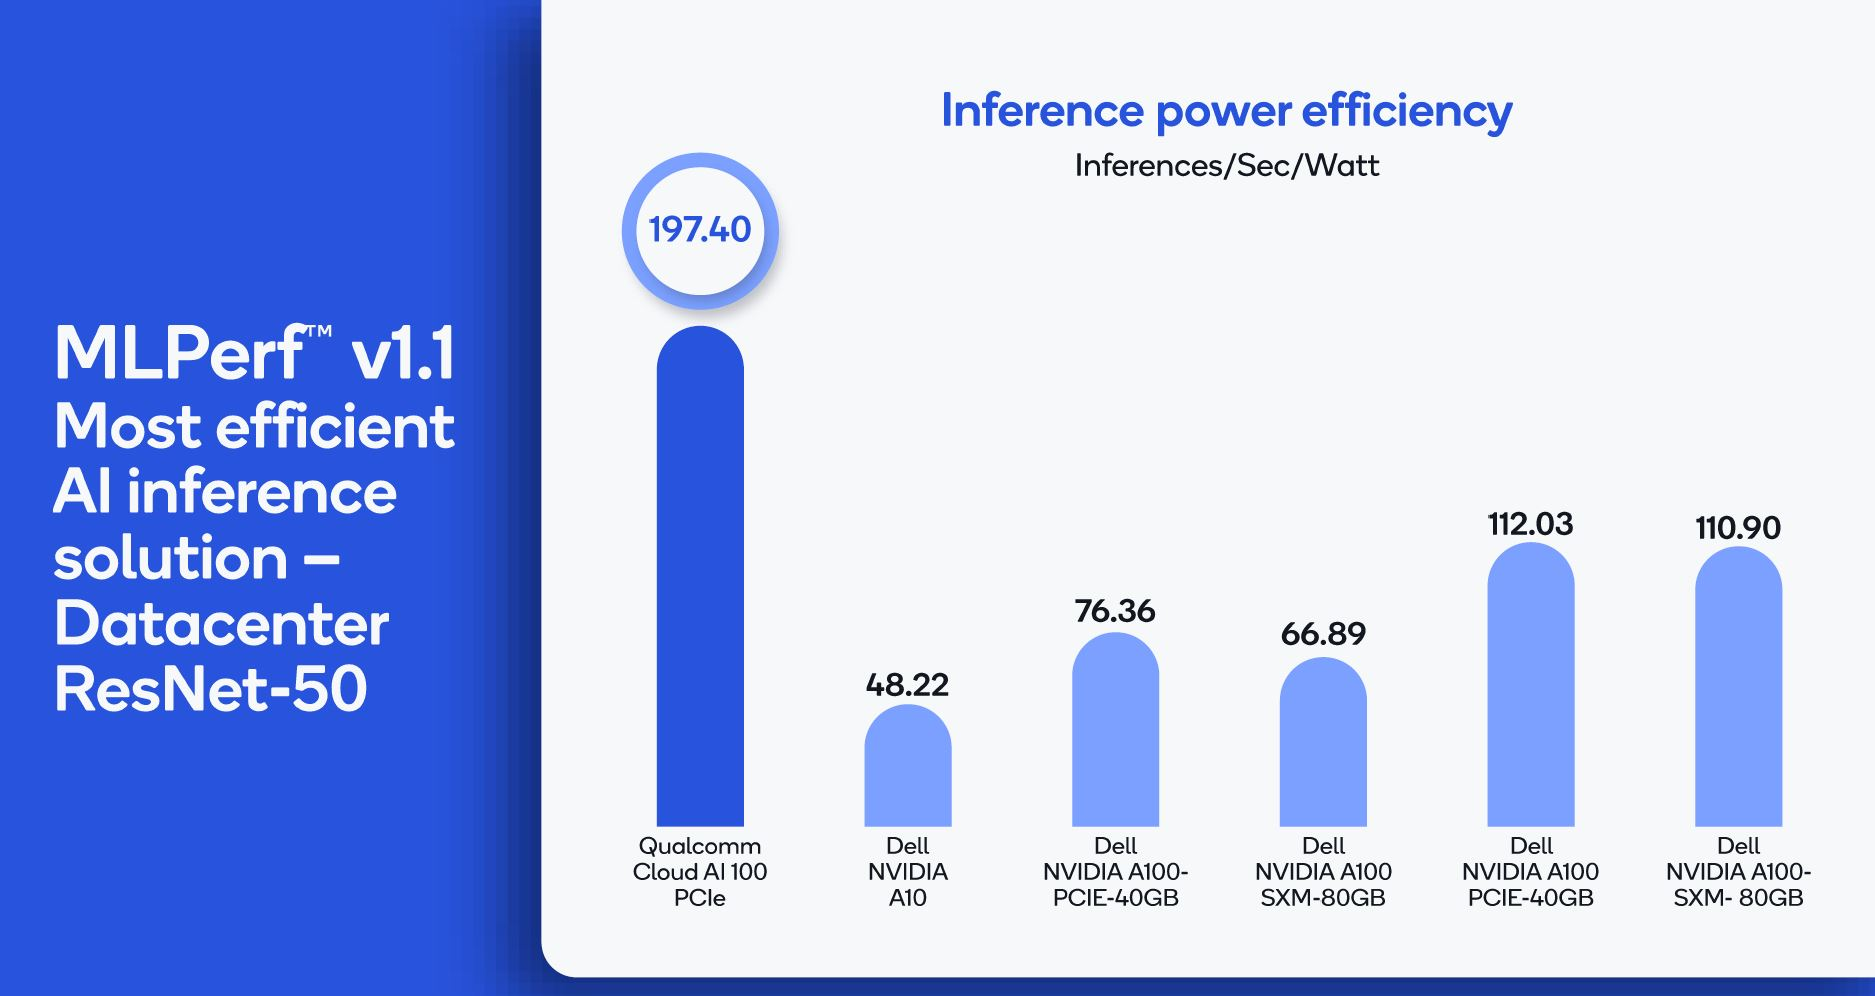 Qualcomm Cloud AI 100 At MLPerf Inference V1.1 Efficiency Comparison Yikes 1